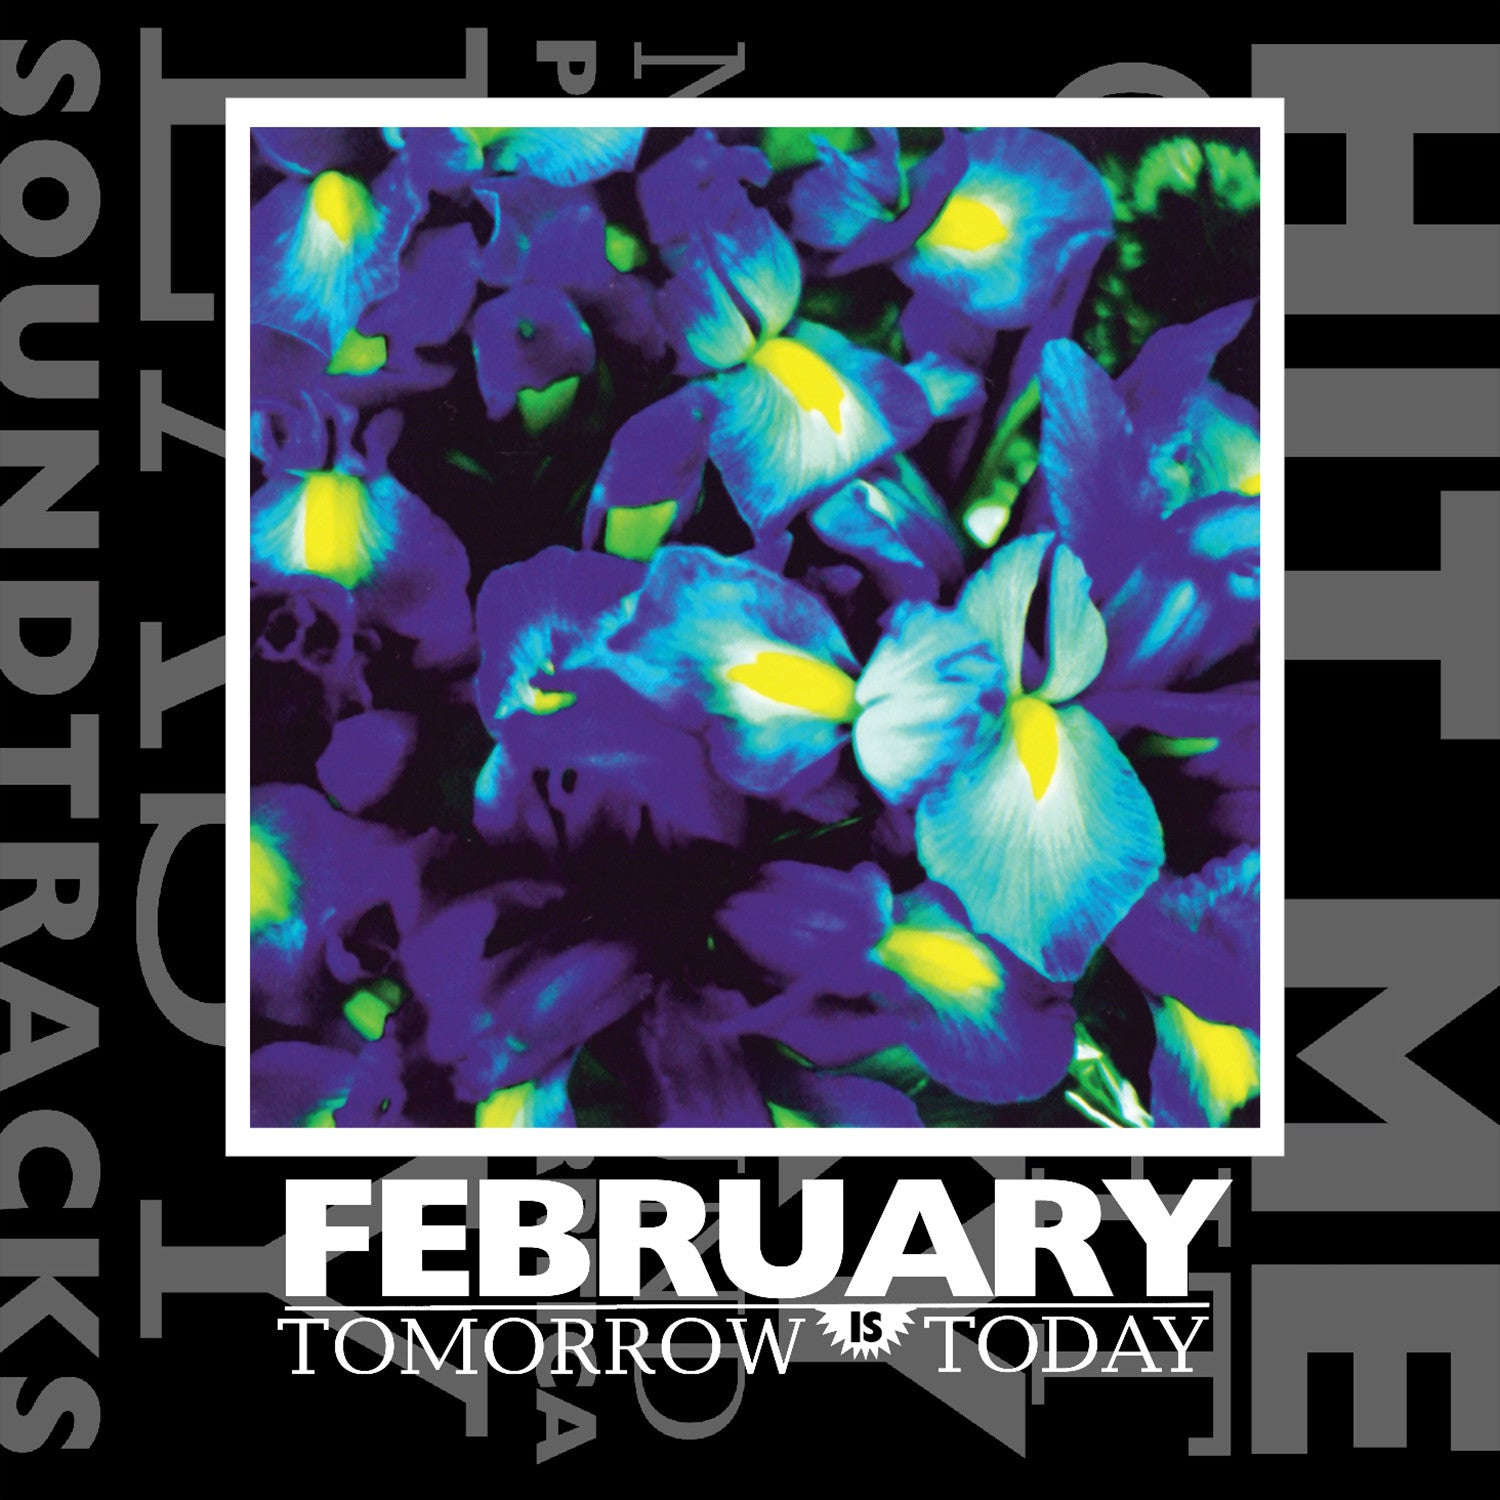 February - Tomorrow Is Today